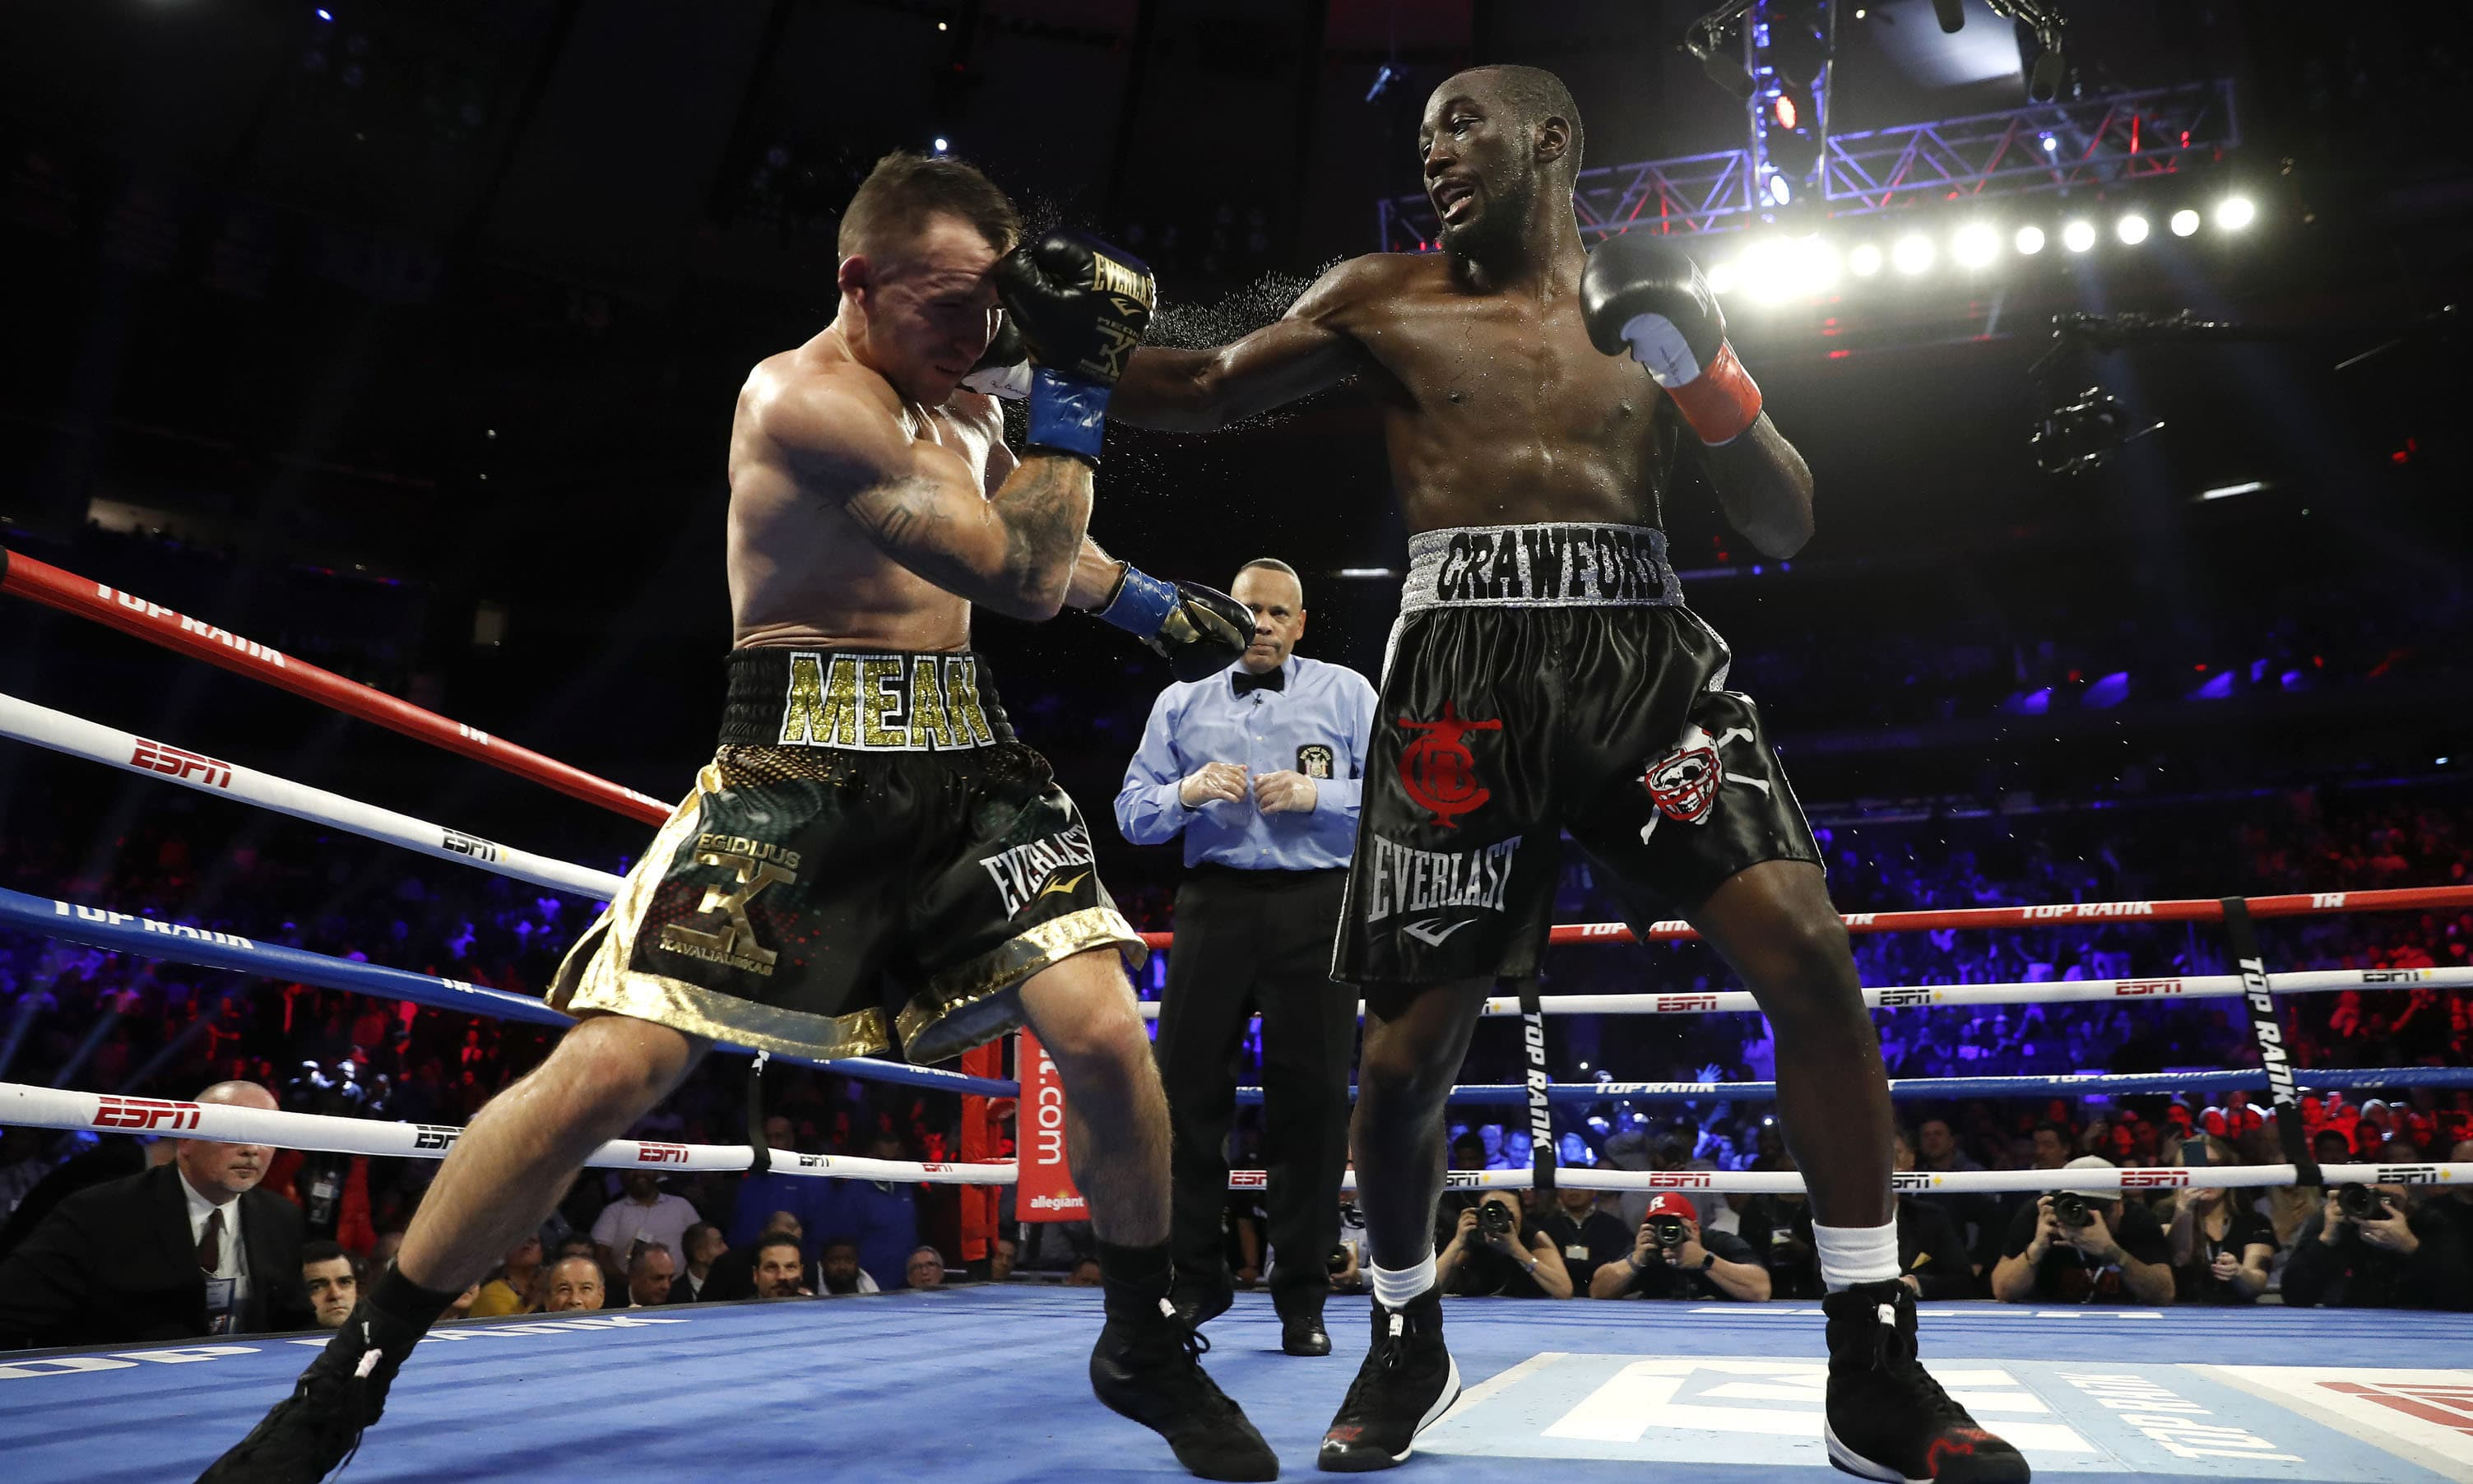 Terence Crawford, right, punches Lithuania's Egidijus Kavaliauskas, knocking him down for a TKO in the ninth round of a WBO welterweight boxing match on Dec 14. — AP